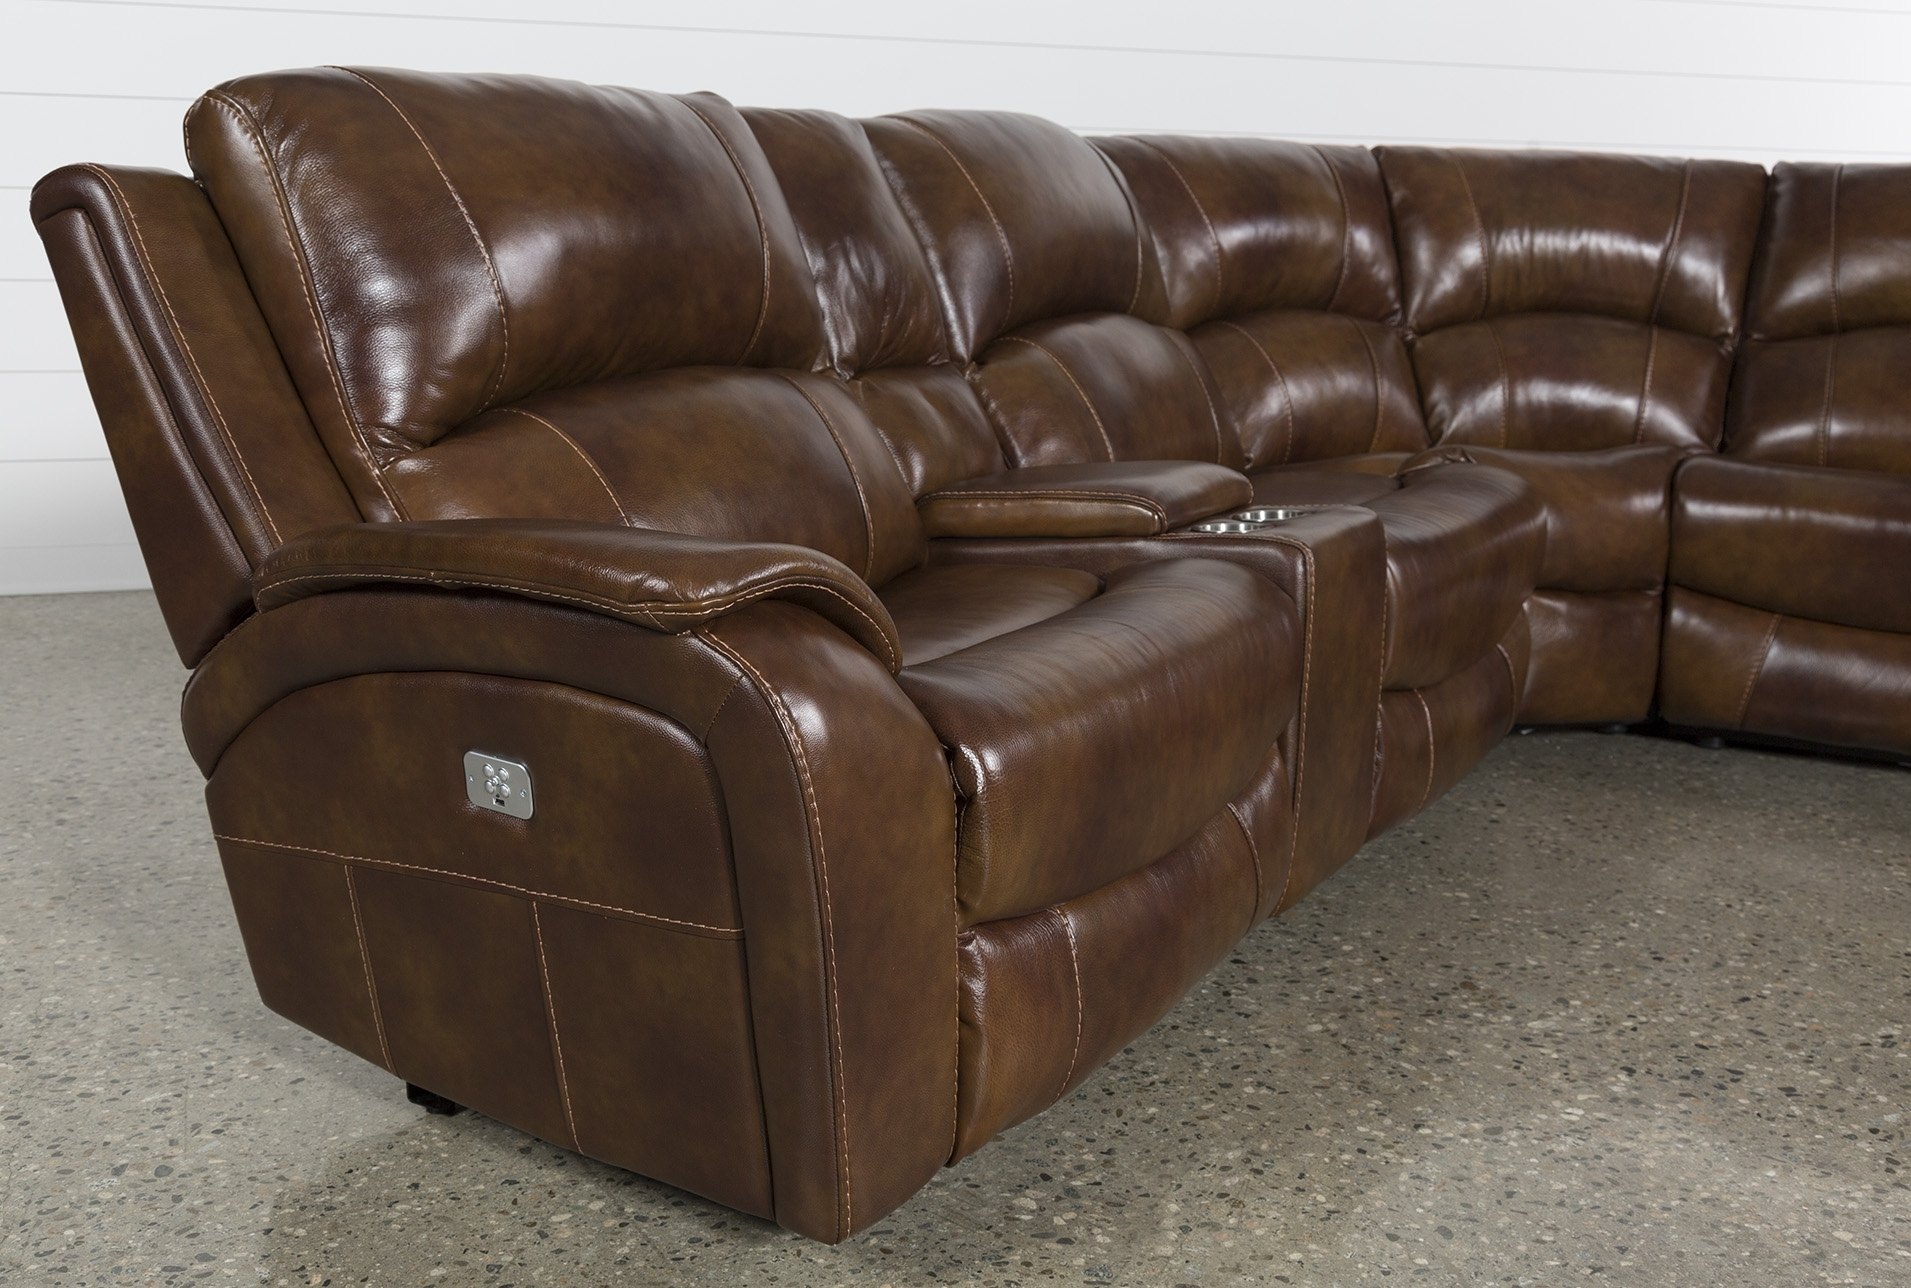 Lincoln Aged Leather Chesterfield - 2 Seater in Travis Cognac Leather 6 Piece Power Reclining Sectionals With Power Headrest & Usb (Image 17 of 30)